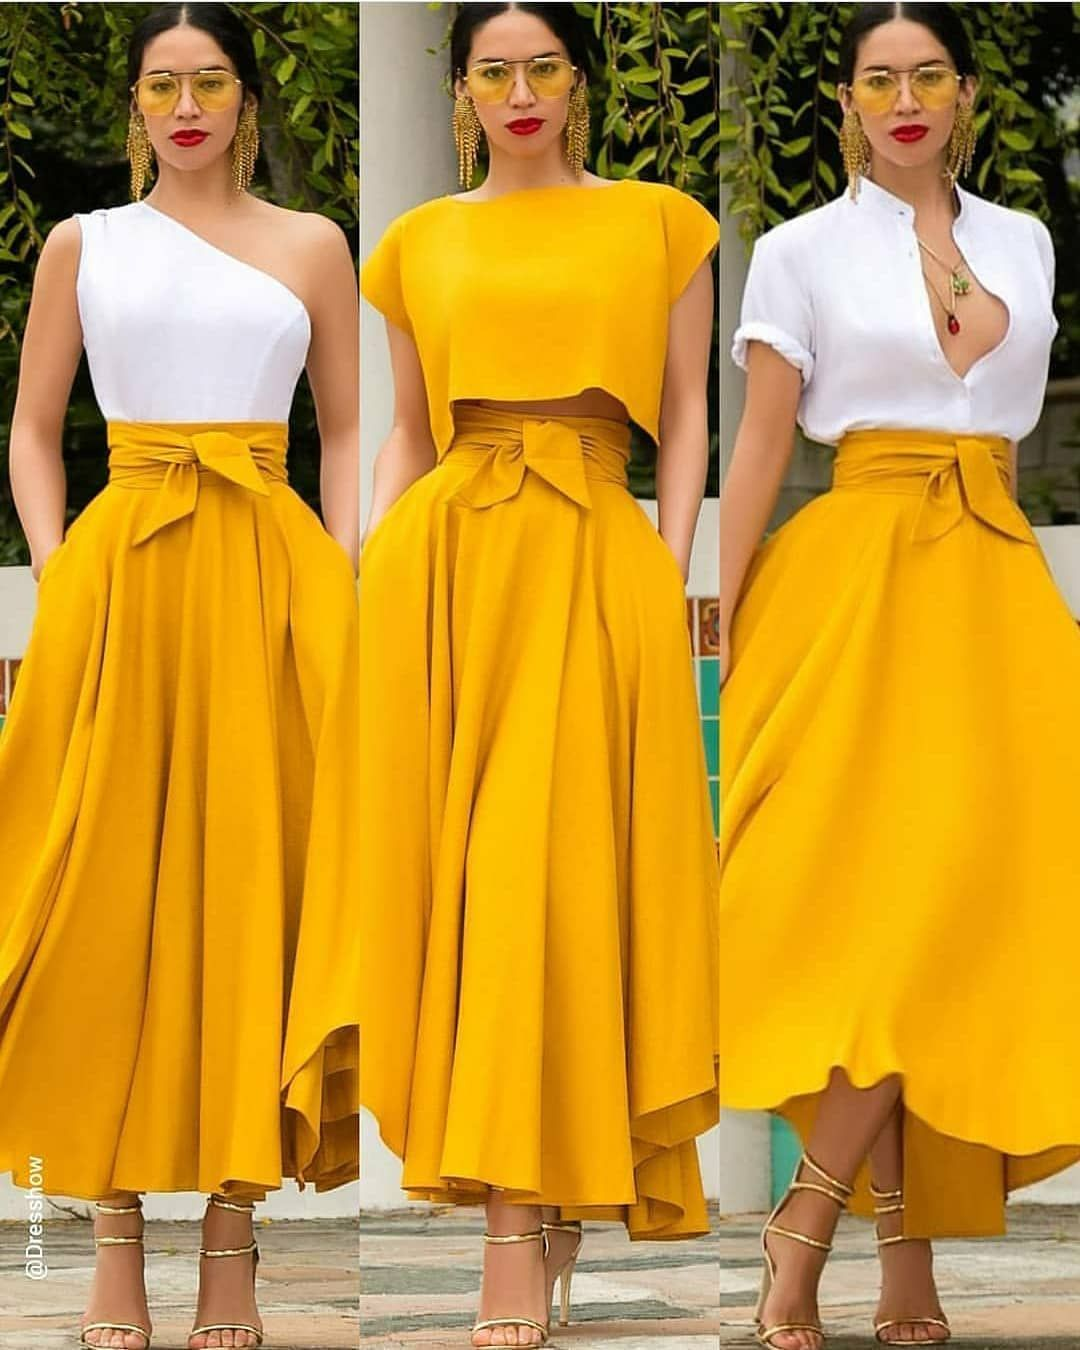 "HAREM's Couture on Instagram: ""1,2 or 3??! 😍 .@dre"